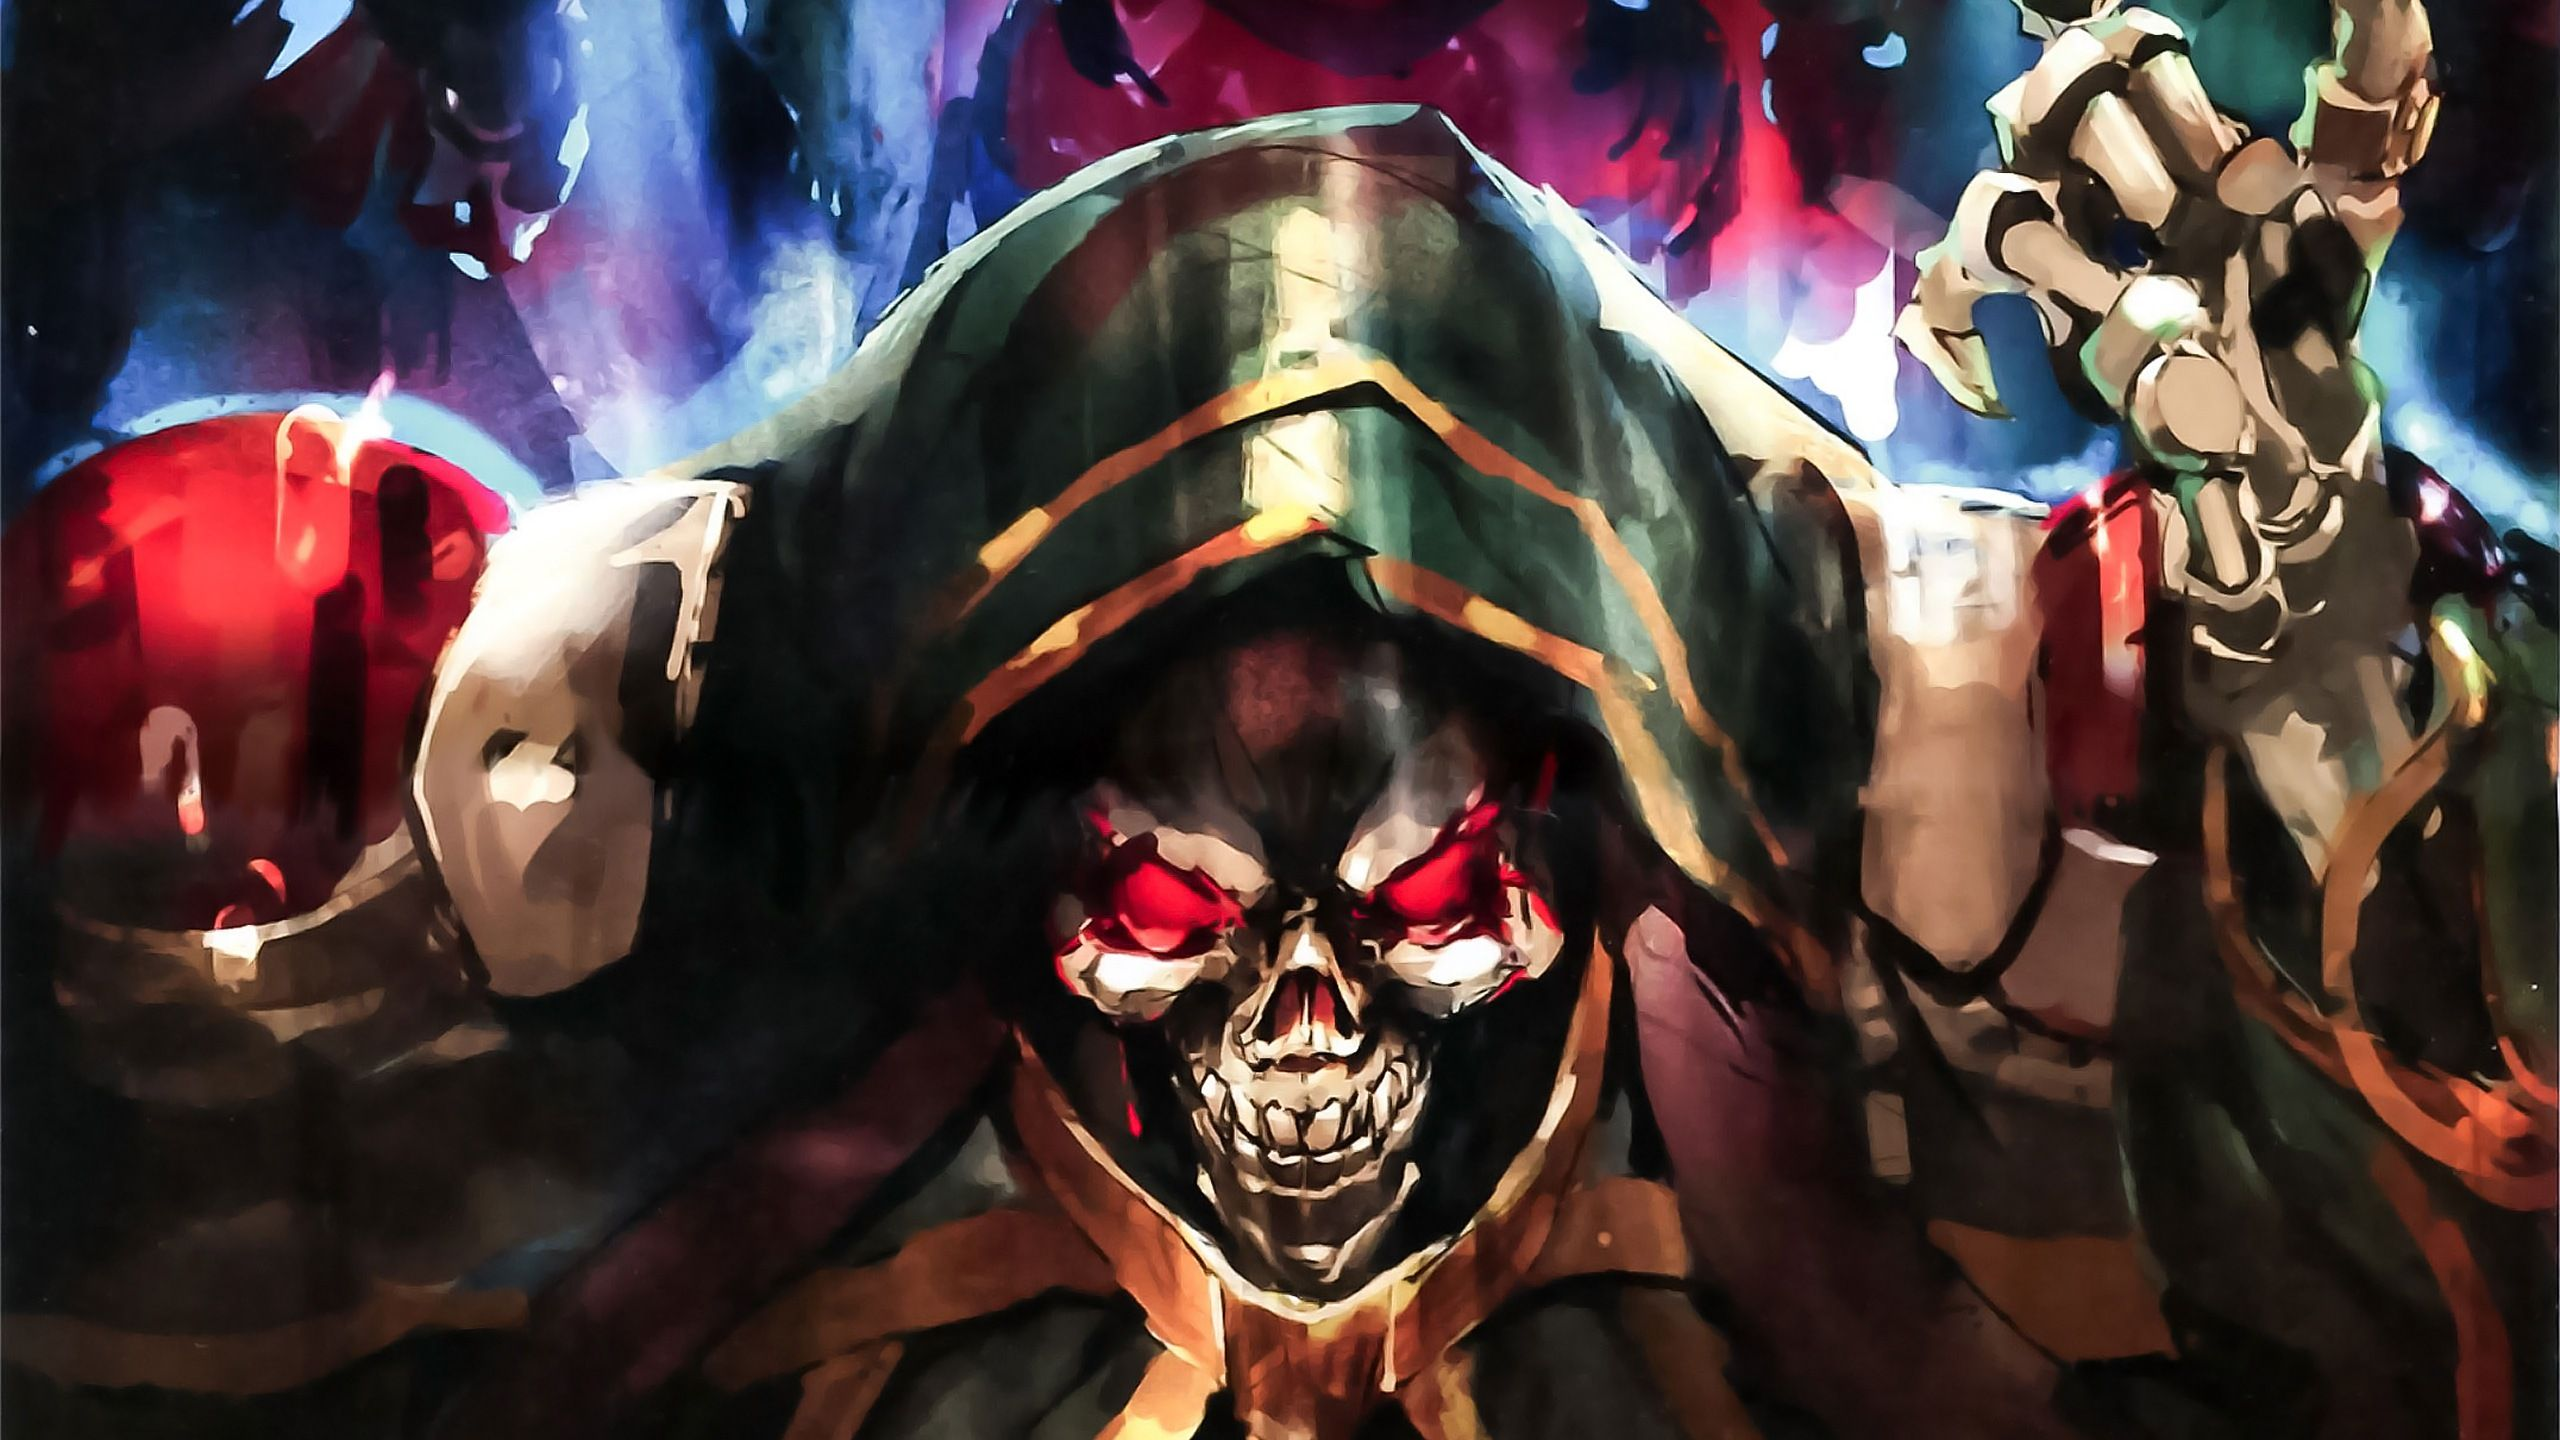 Overlord Ainz Ooal Gown Red Is The Best Anime Wallpaper Manga Artist Manga Art